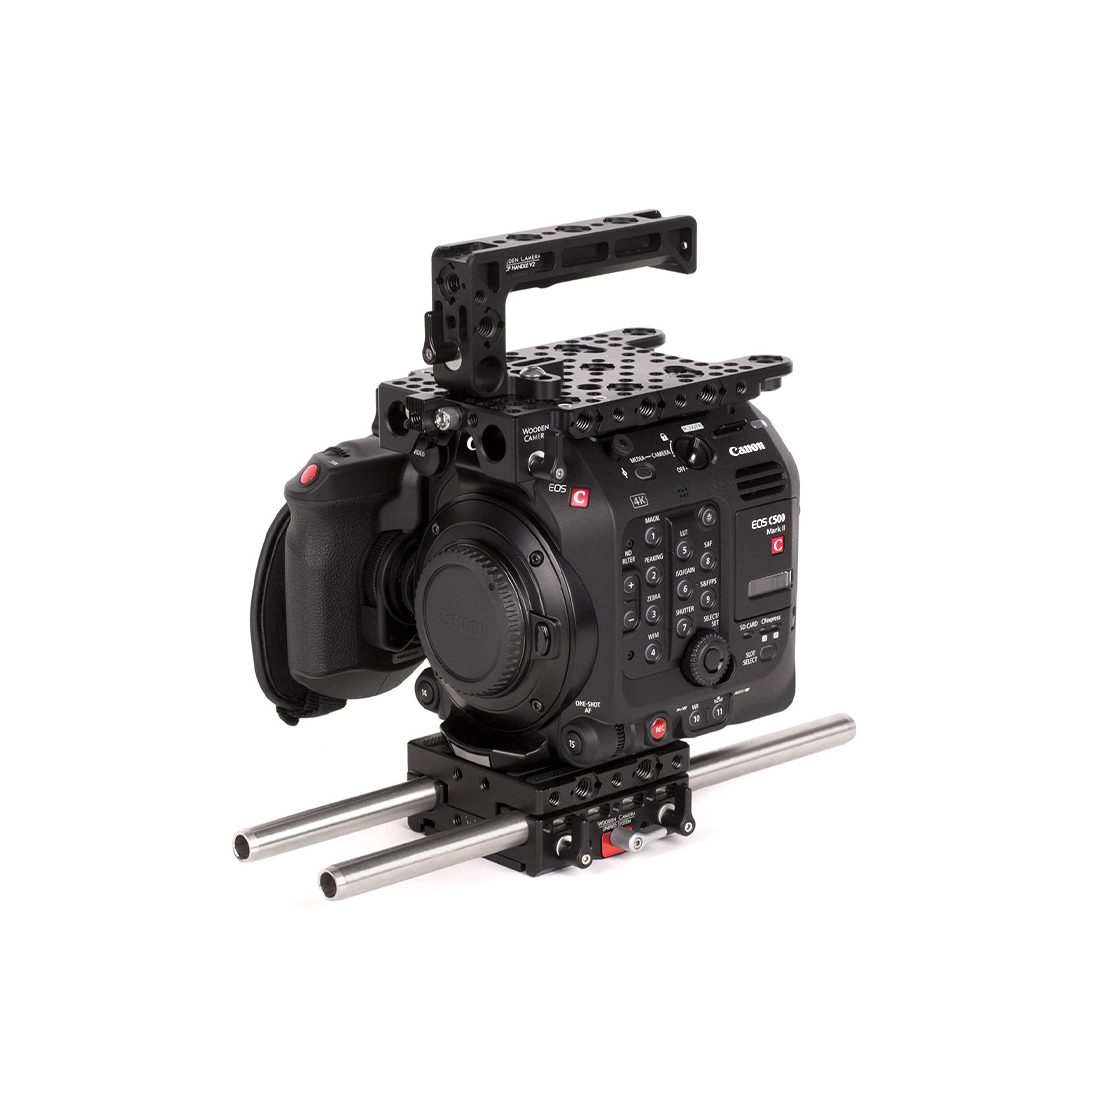 Canon C500 Mark II Full Frame 5.9K CMOS Camera